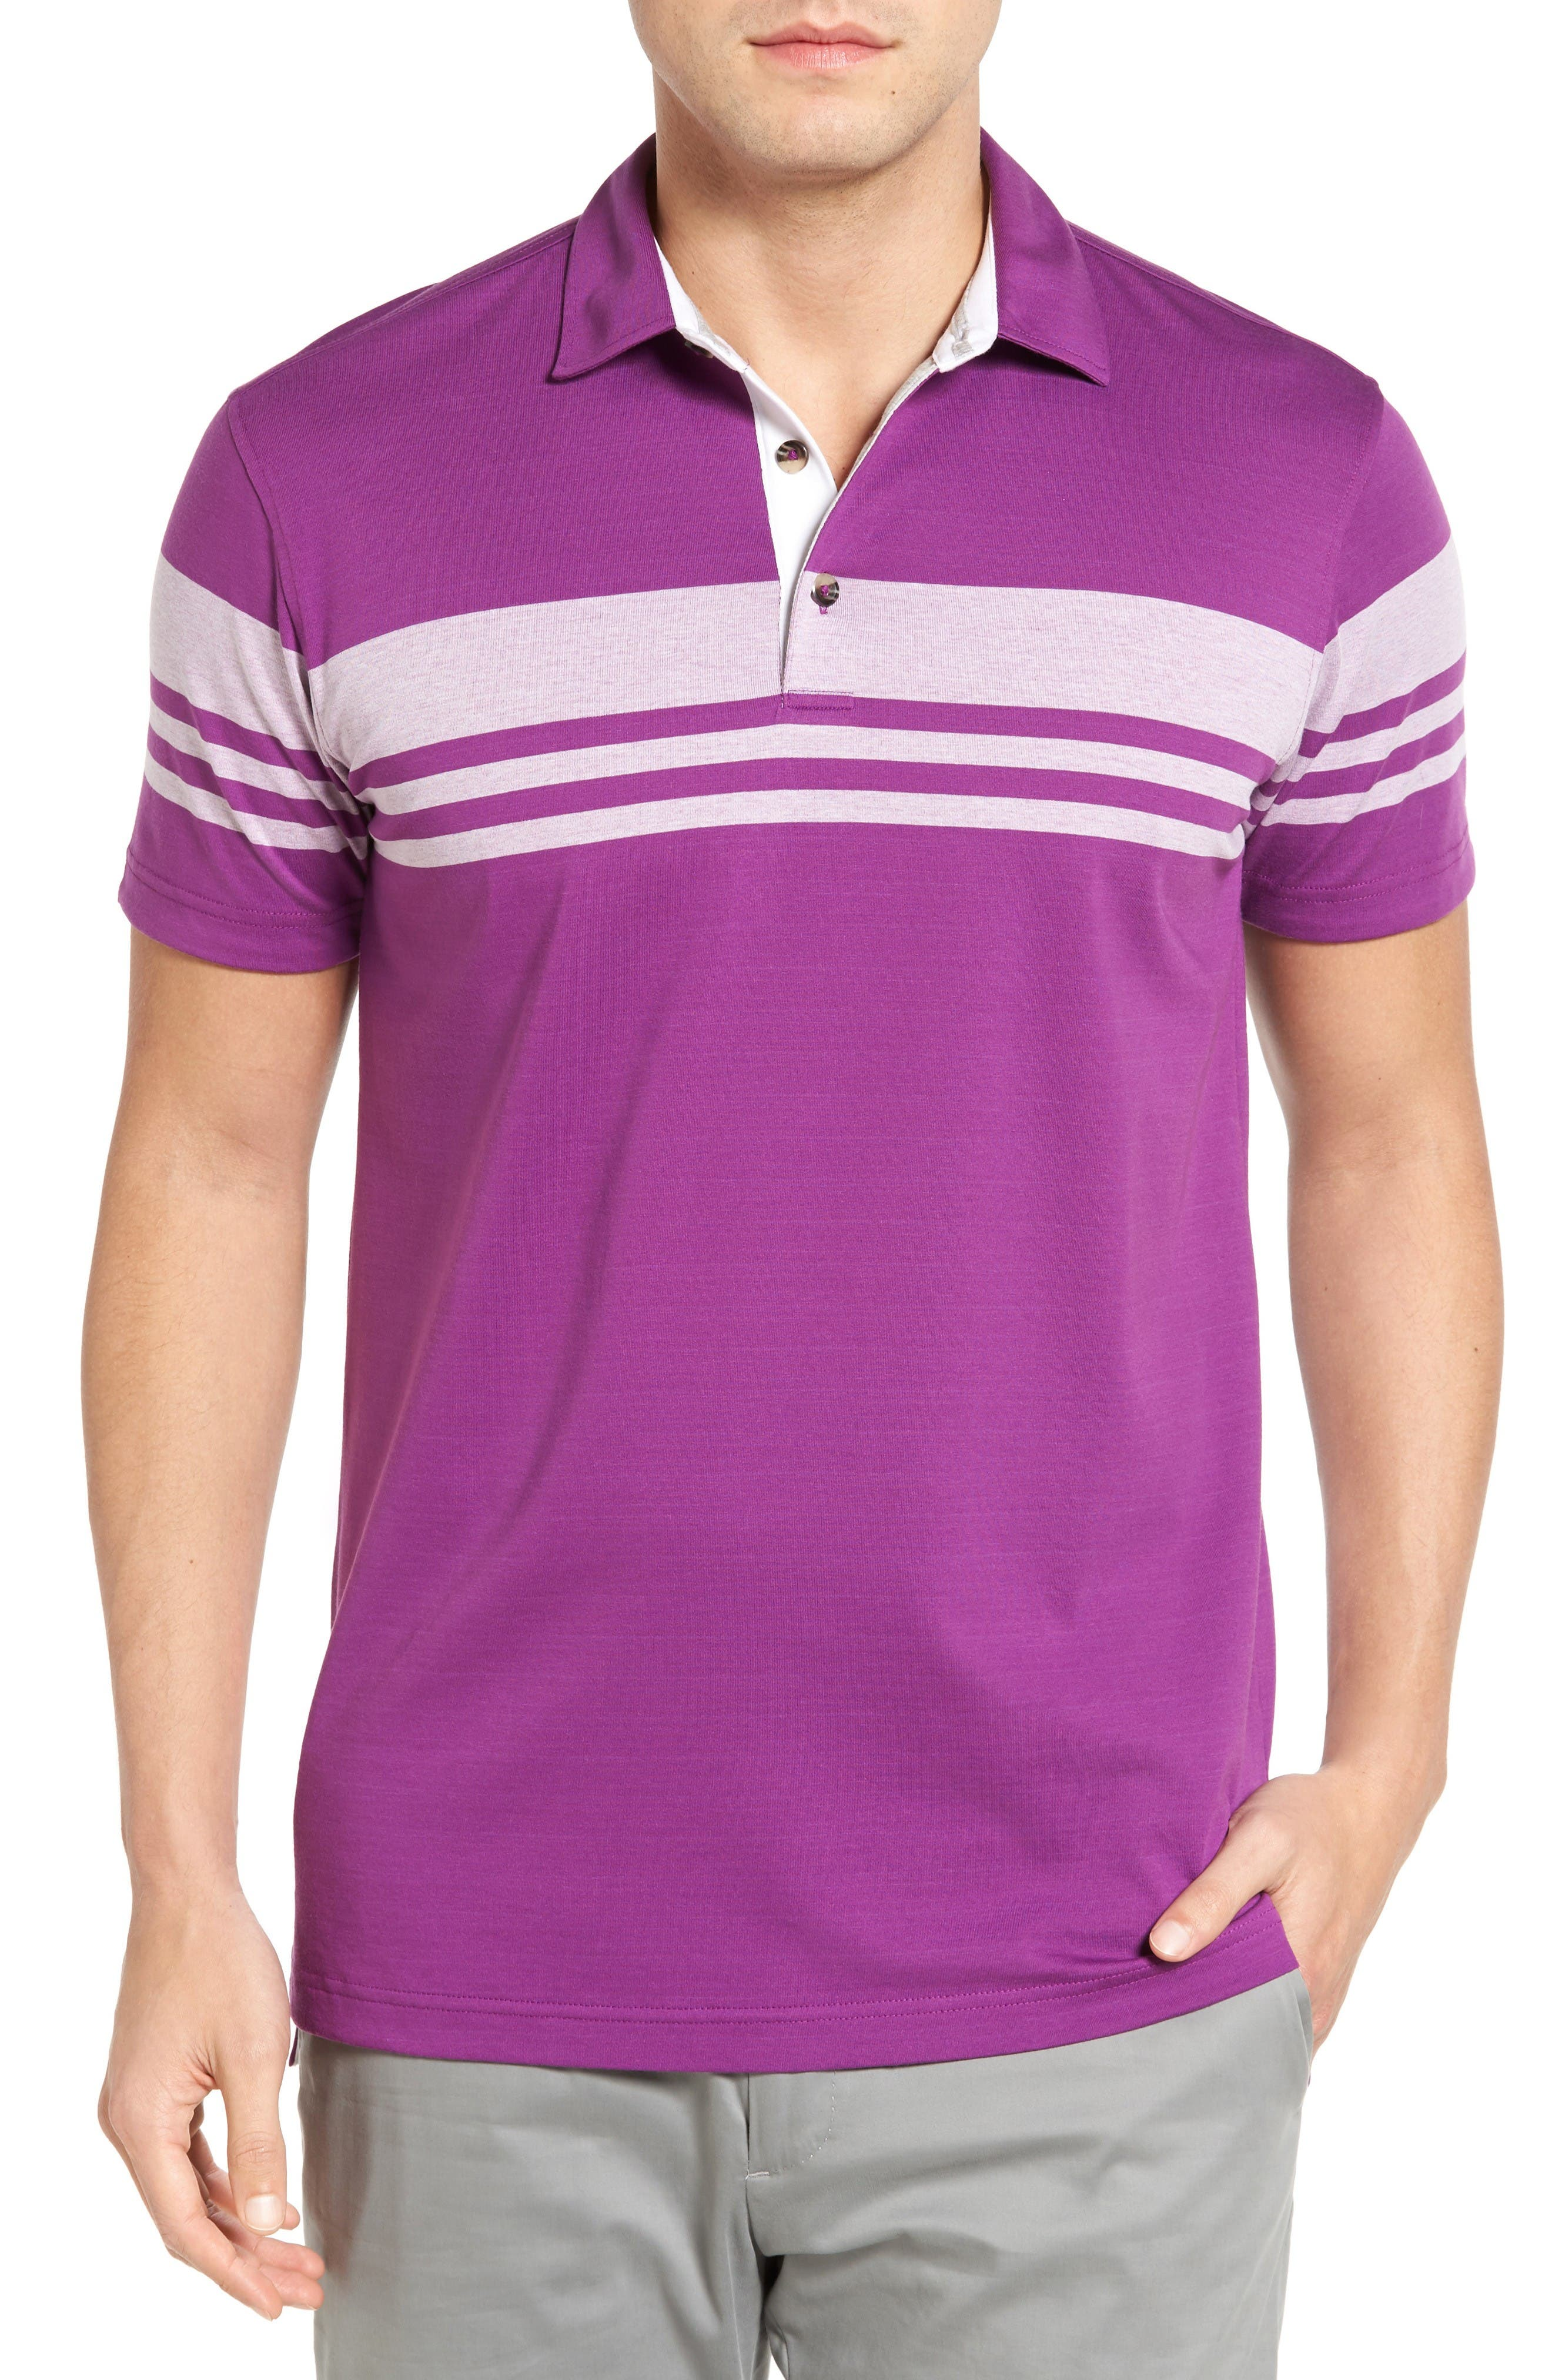 Bobby Jones Trio Stripe Jersey Golf Polo